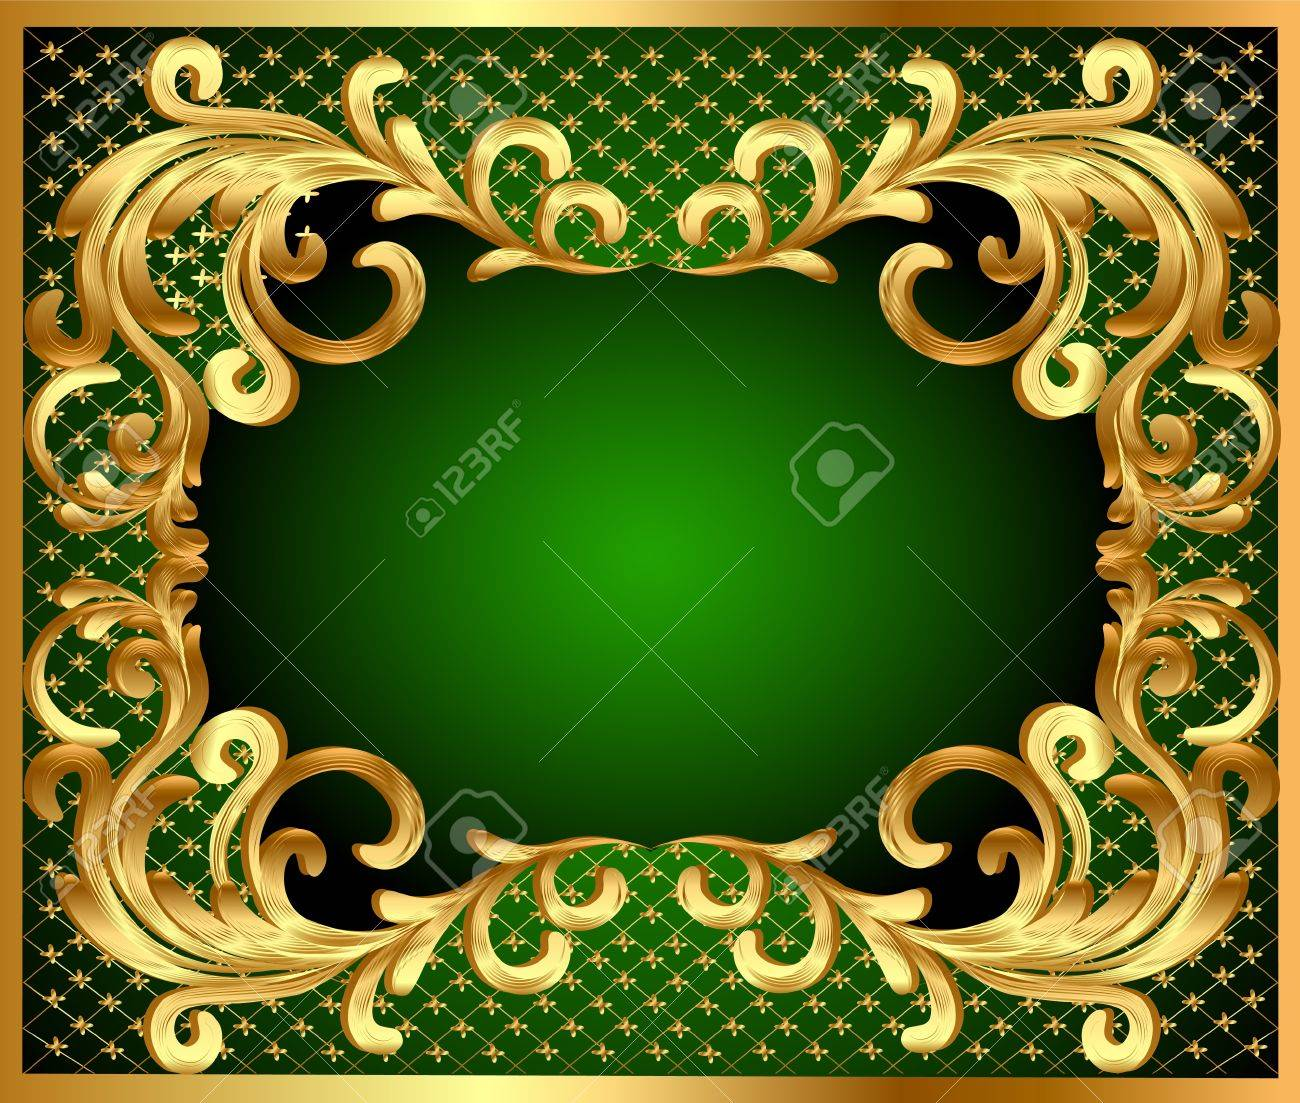 illustration frame background with gold vegetable pattern Stock Vector - 10934196